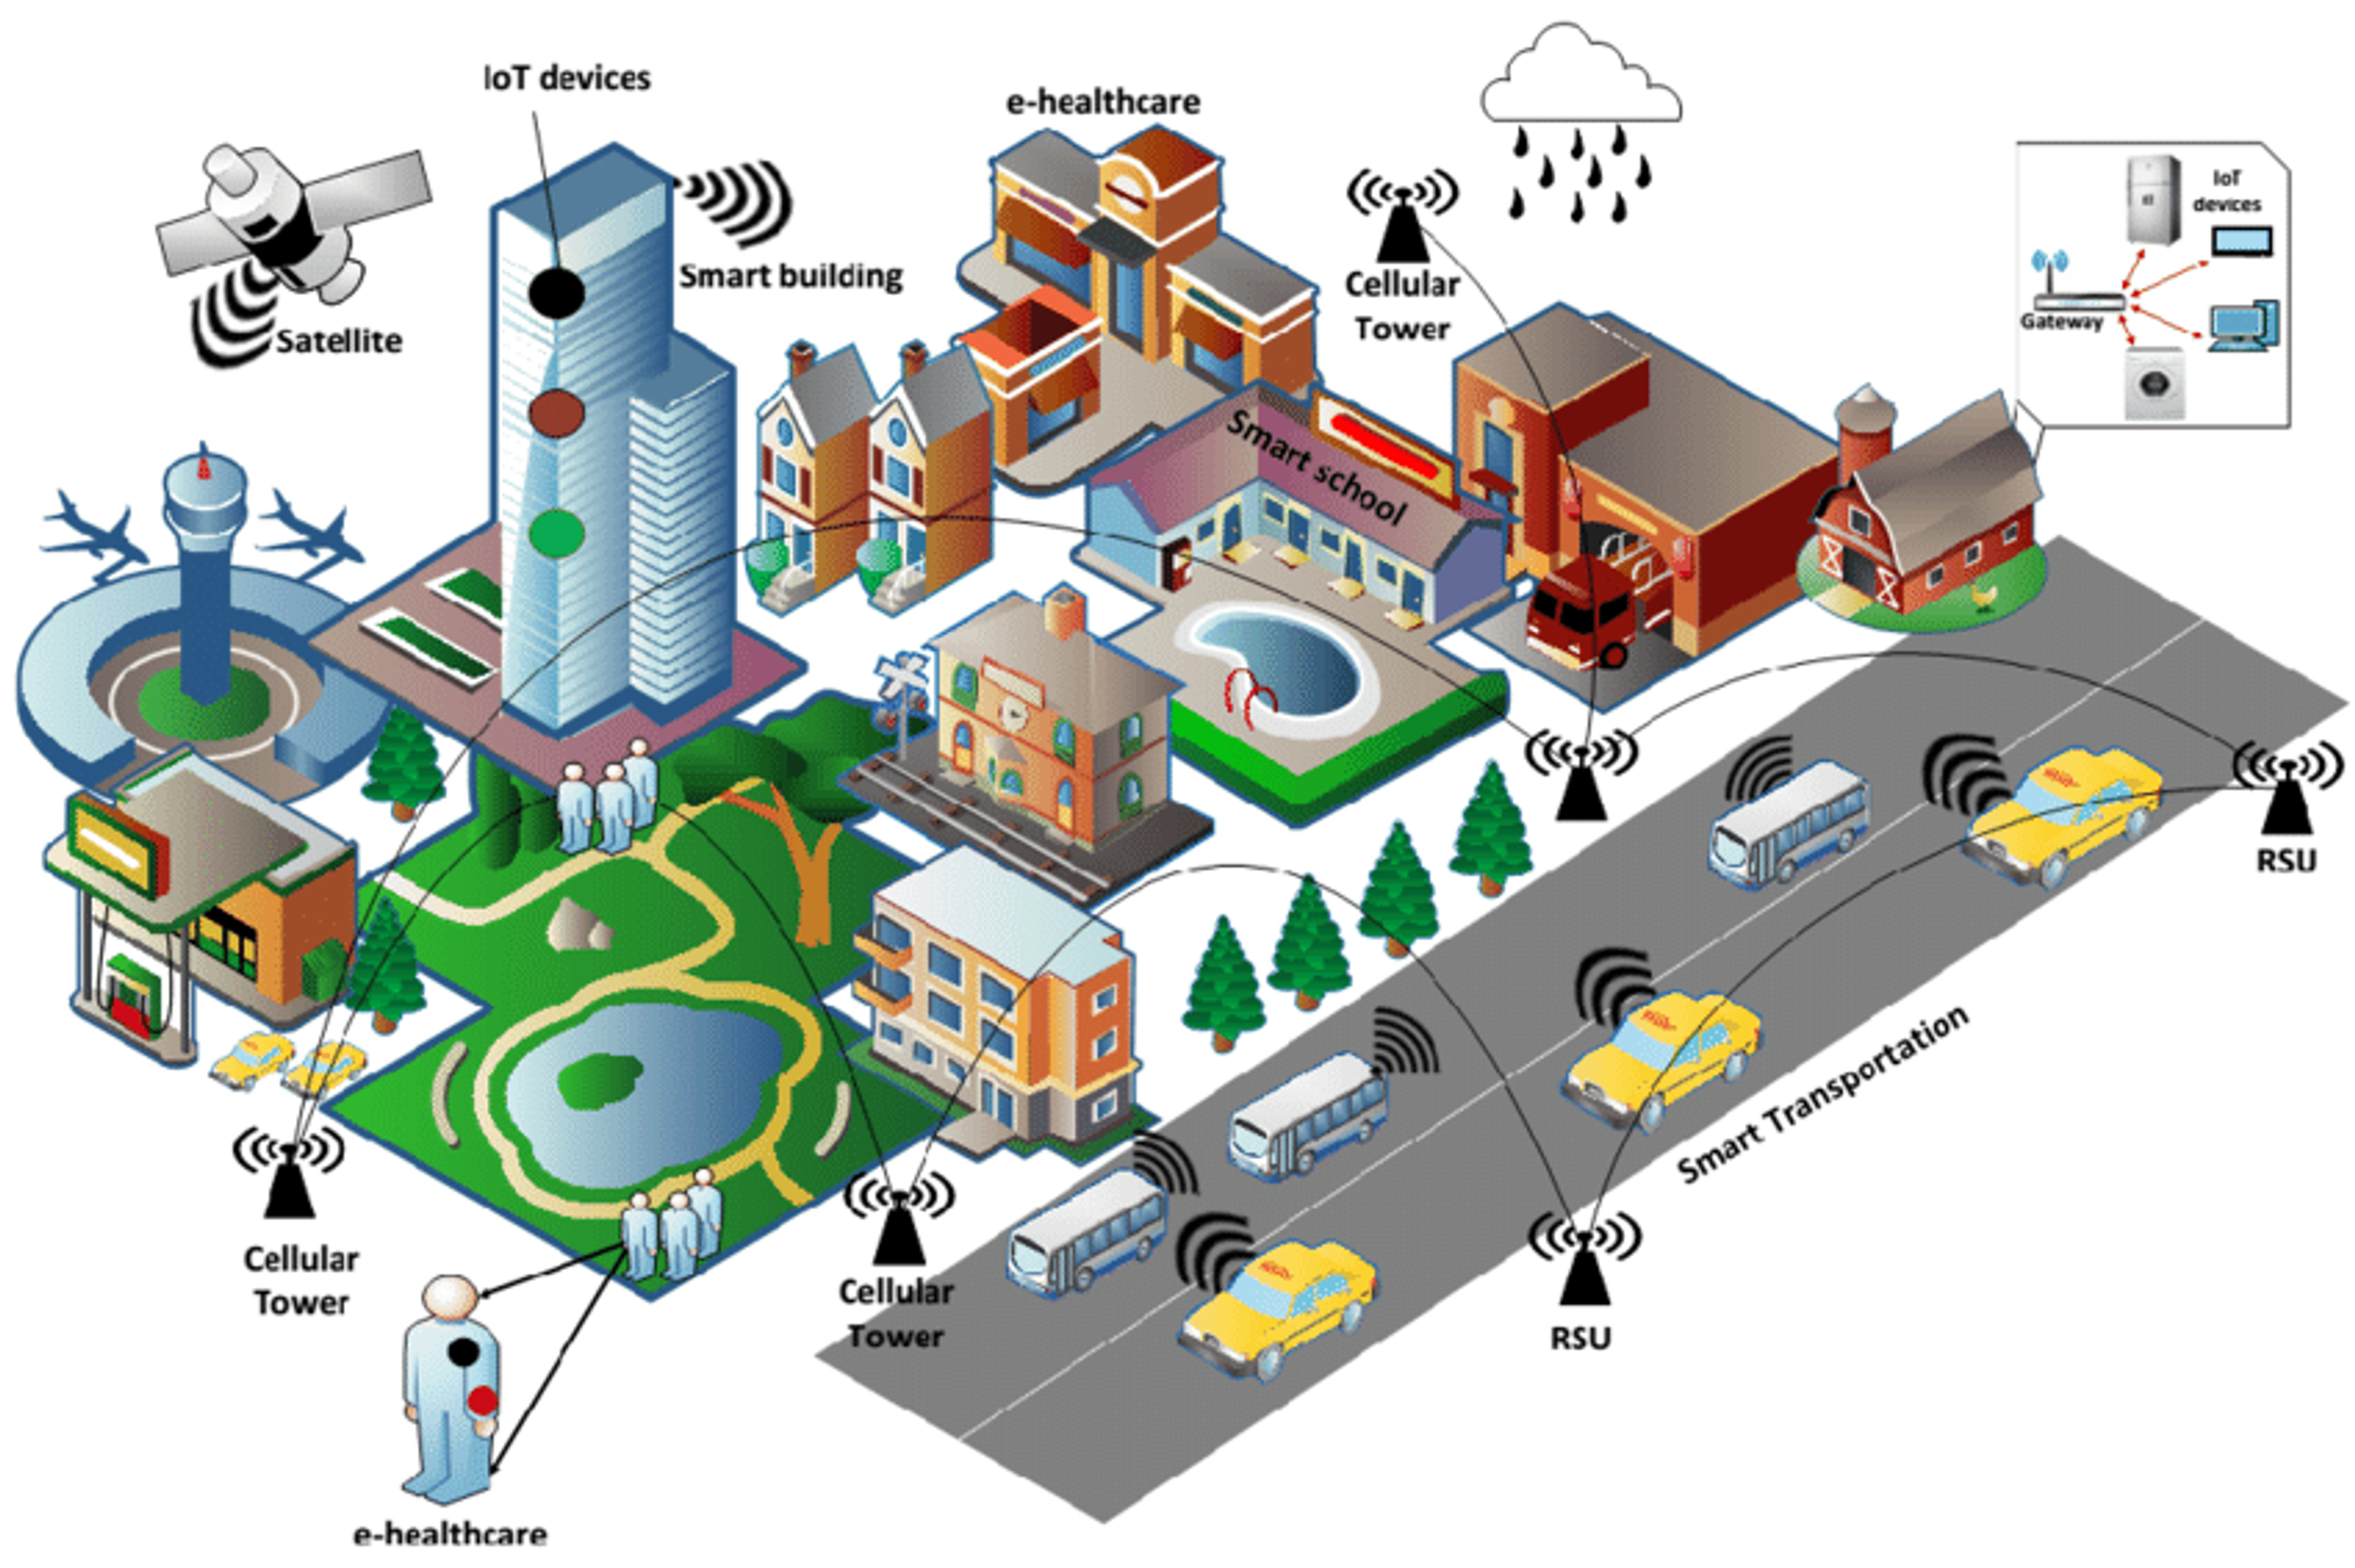 Concept of a networked 'smart city'